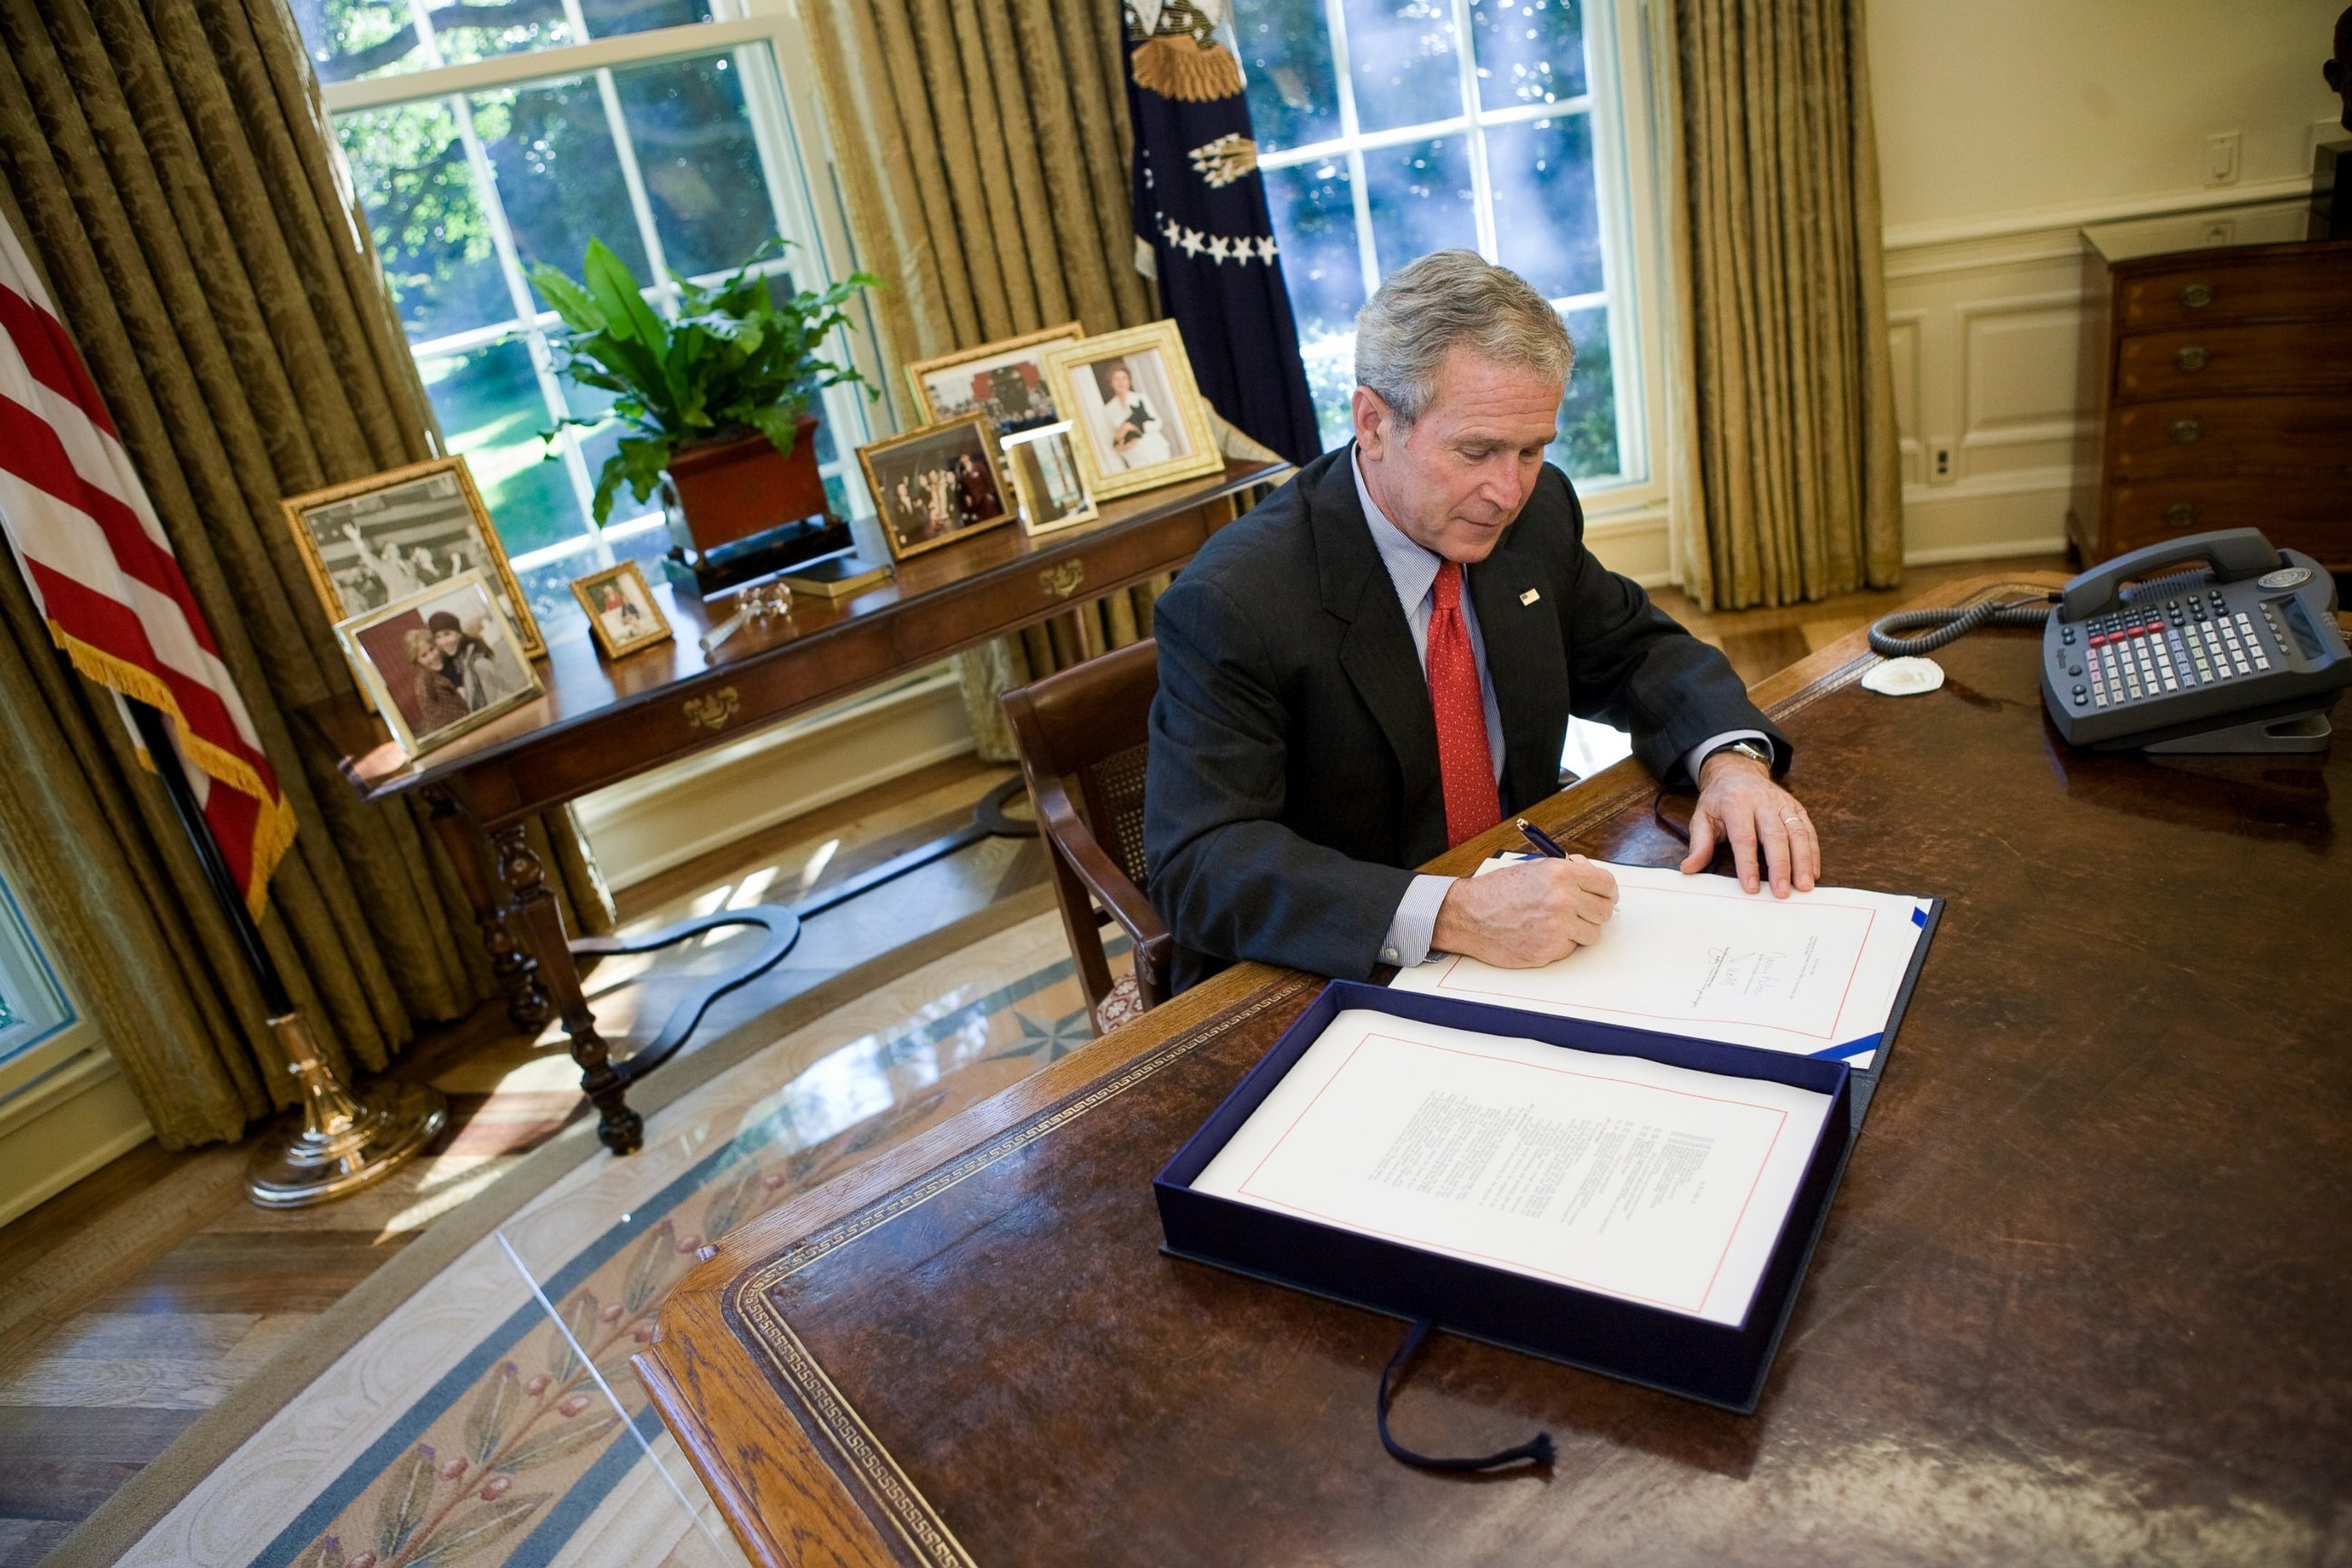 george bush oval office. photo: president george w. bush signs a wall street bailout bill in the oval office - abc news g